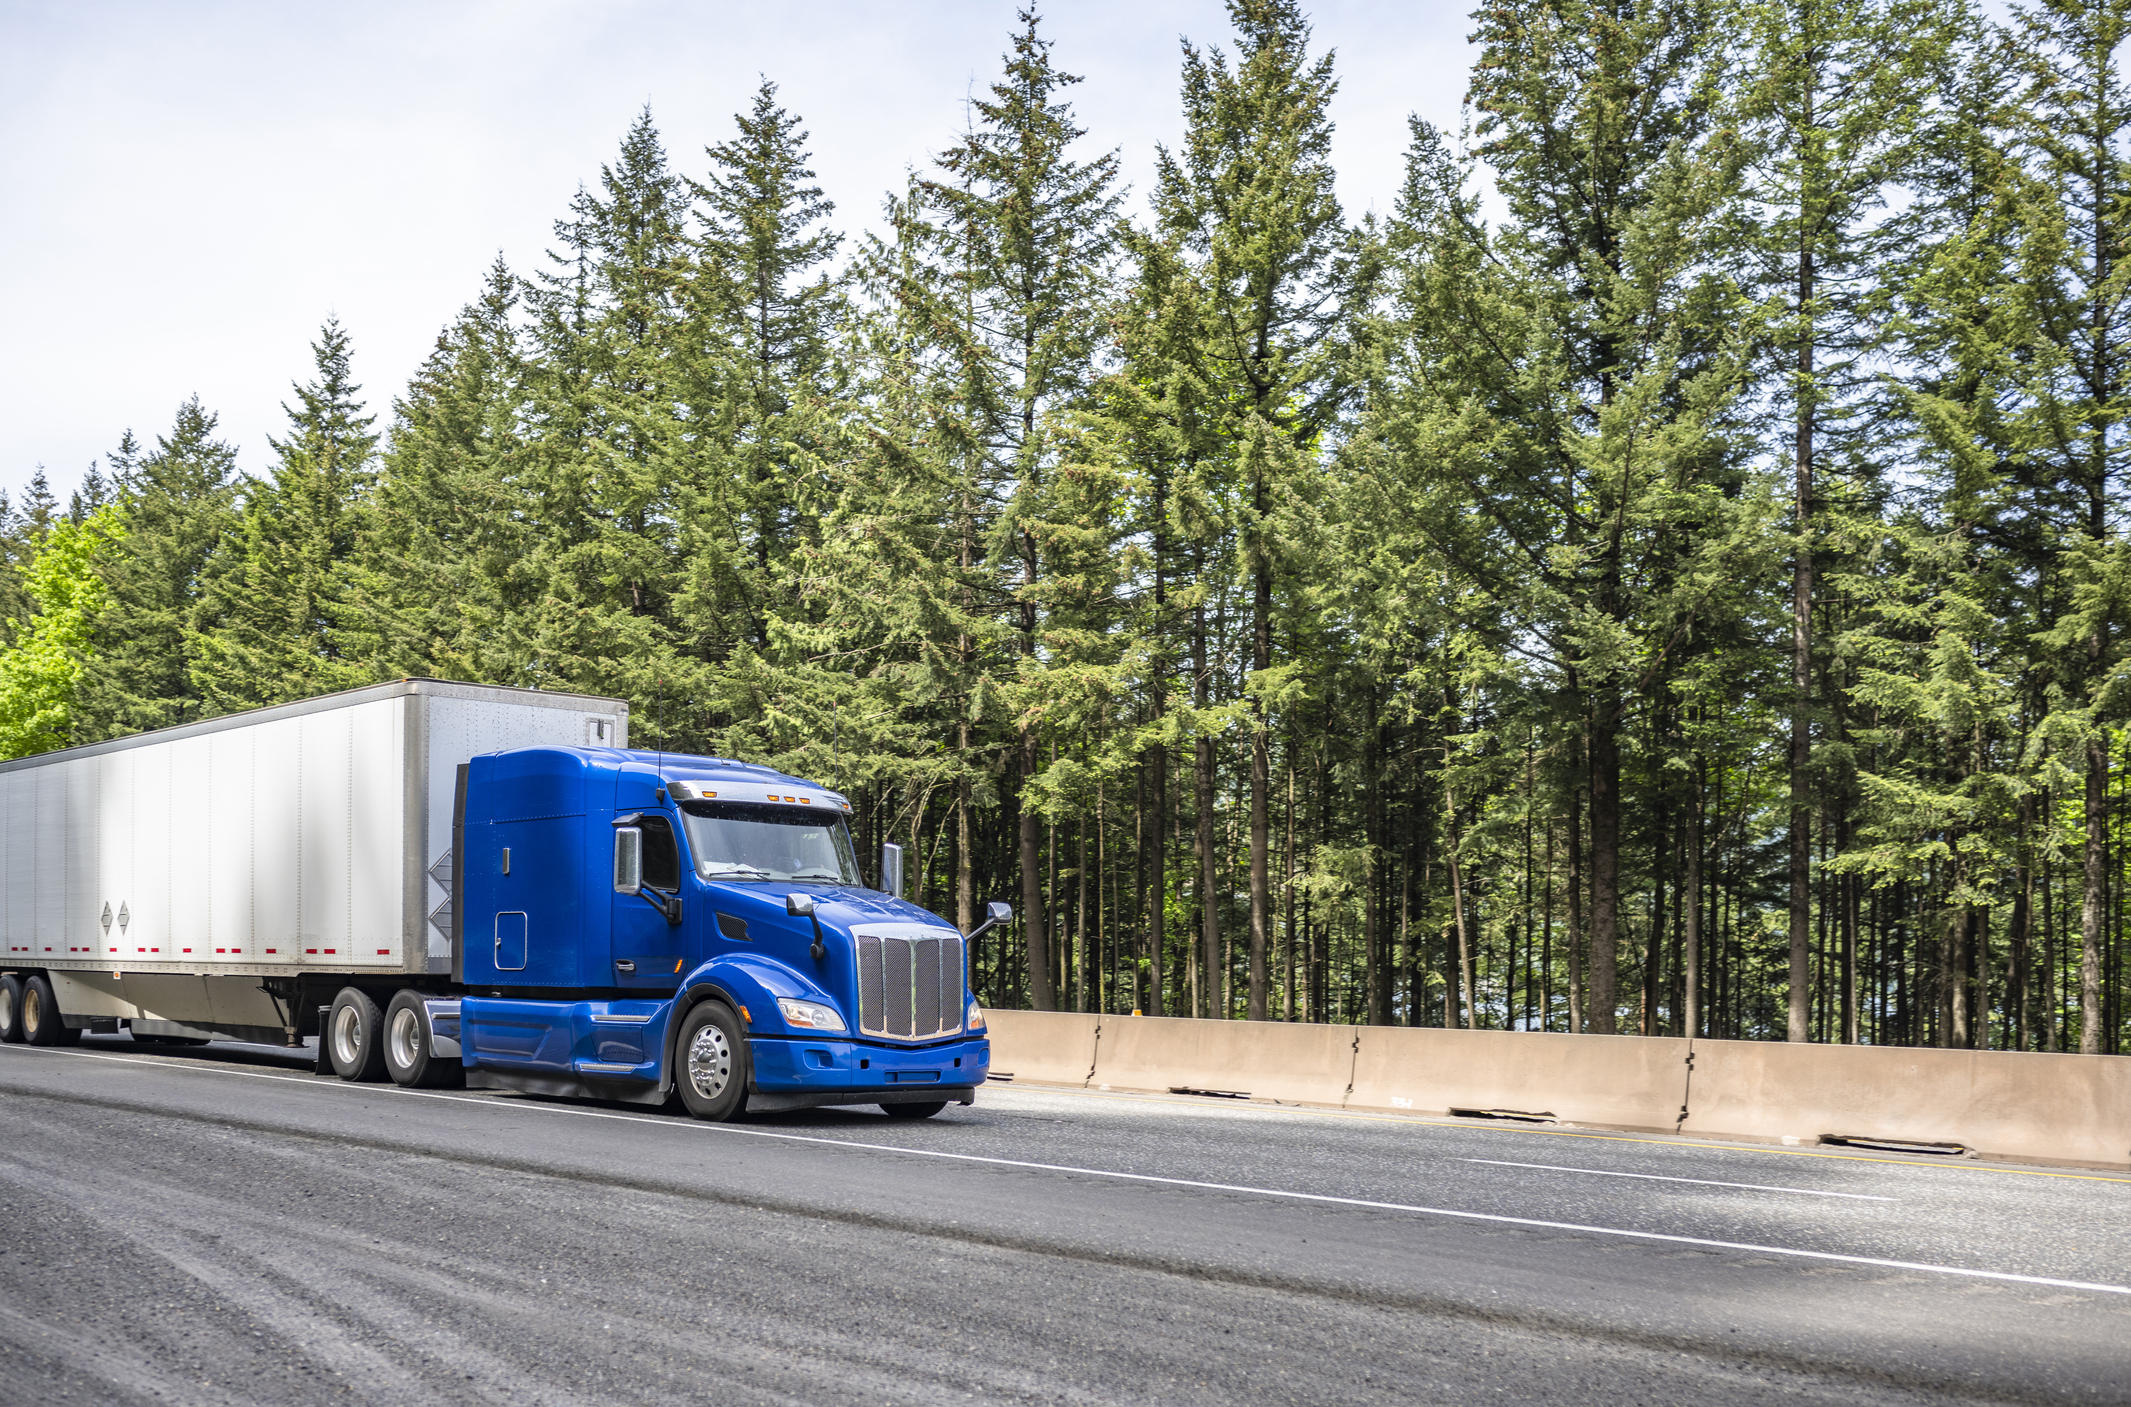 Powerful industrial long haul blue big rig semi truck transporting goods in dry van semi trailer running on the wide highway road with trees on the side